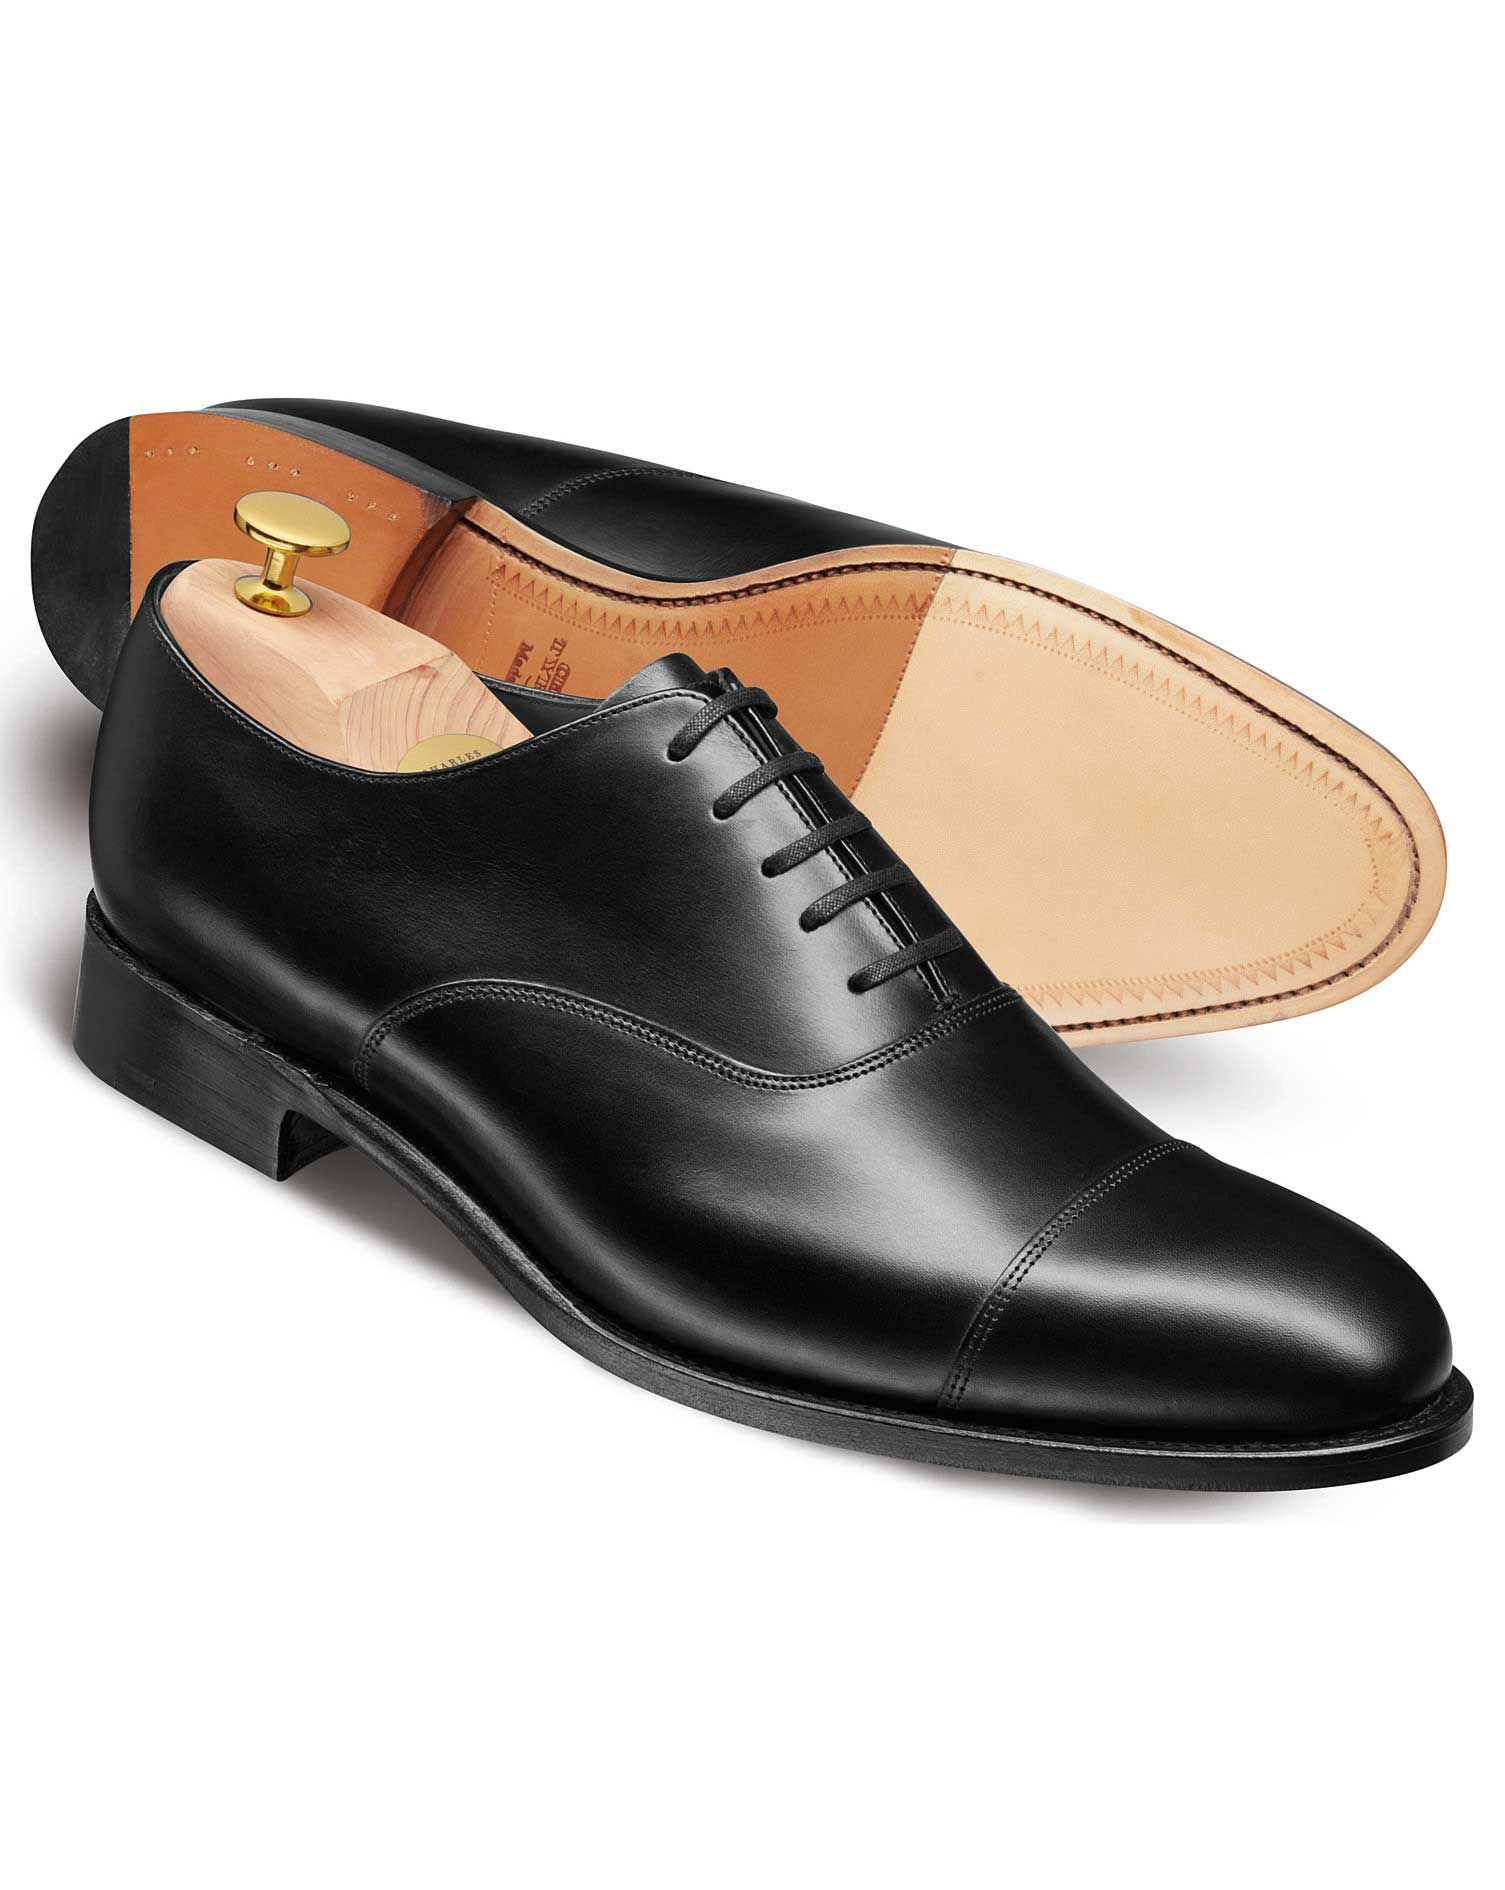 Black Shoes With Strap